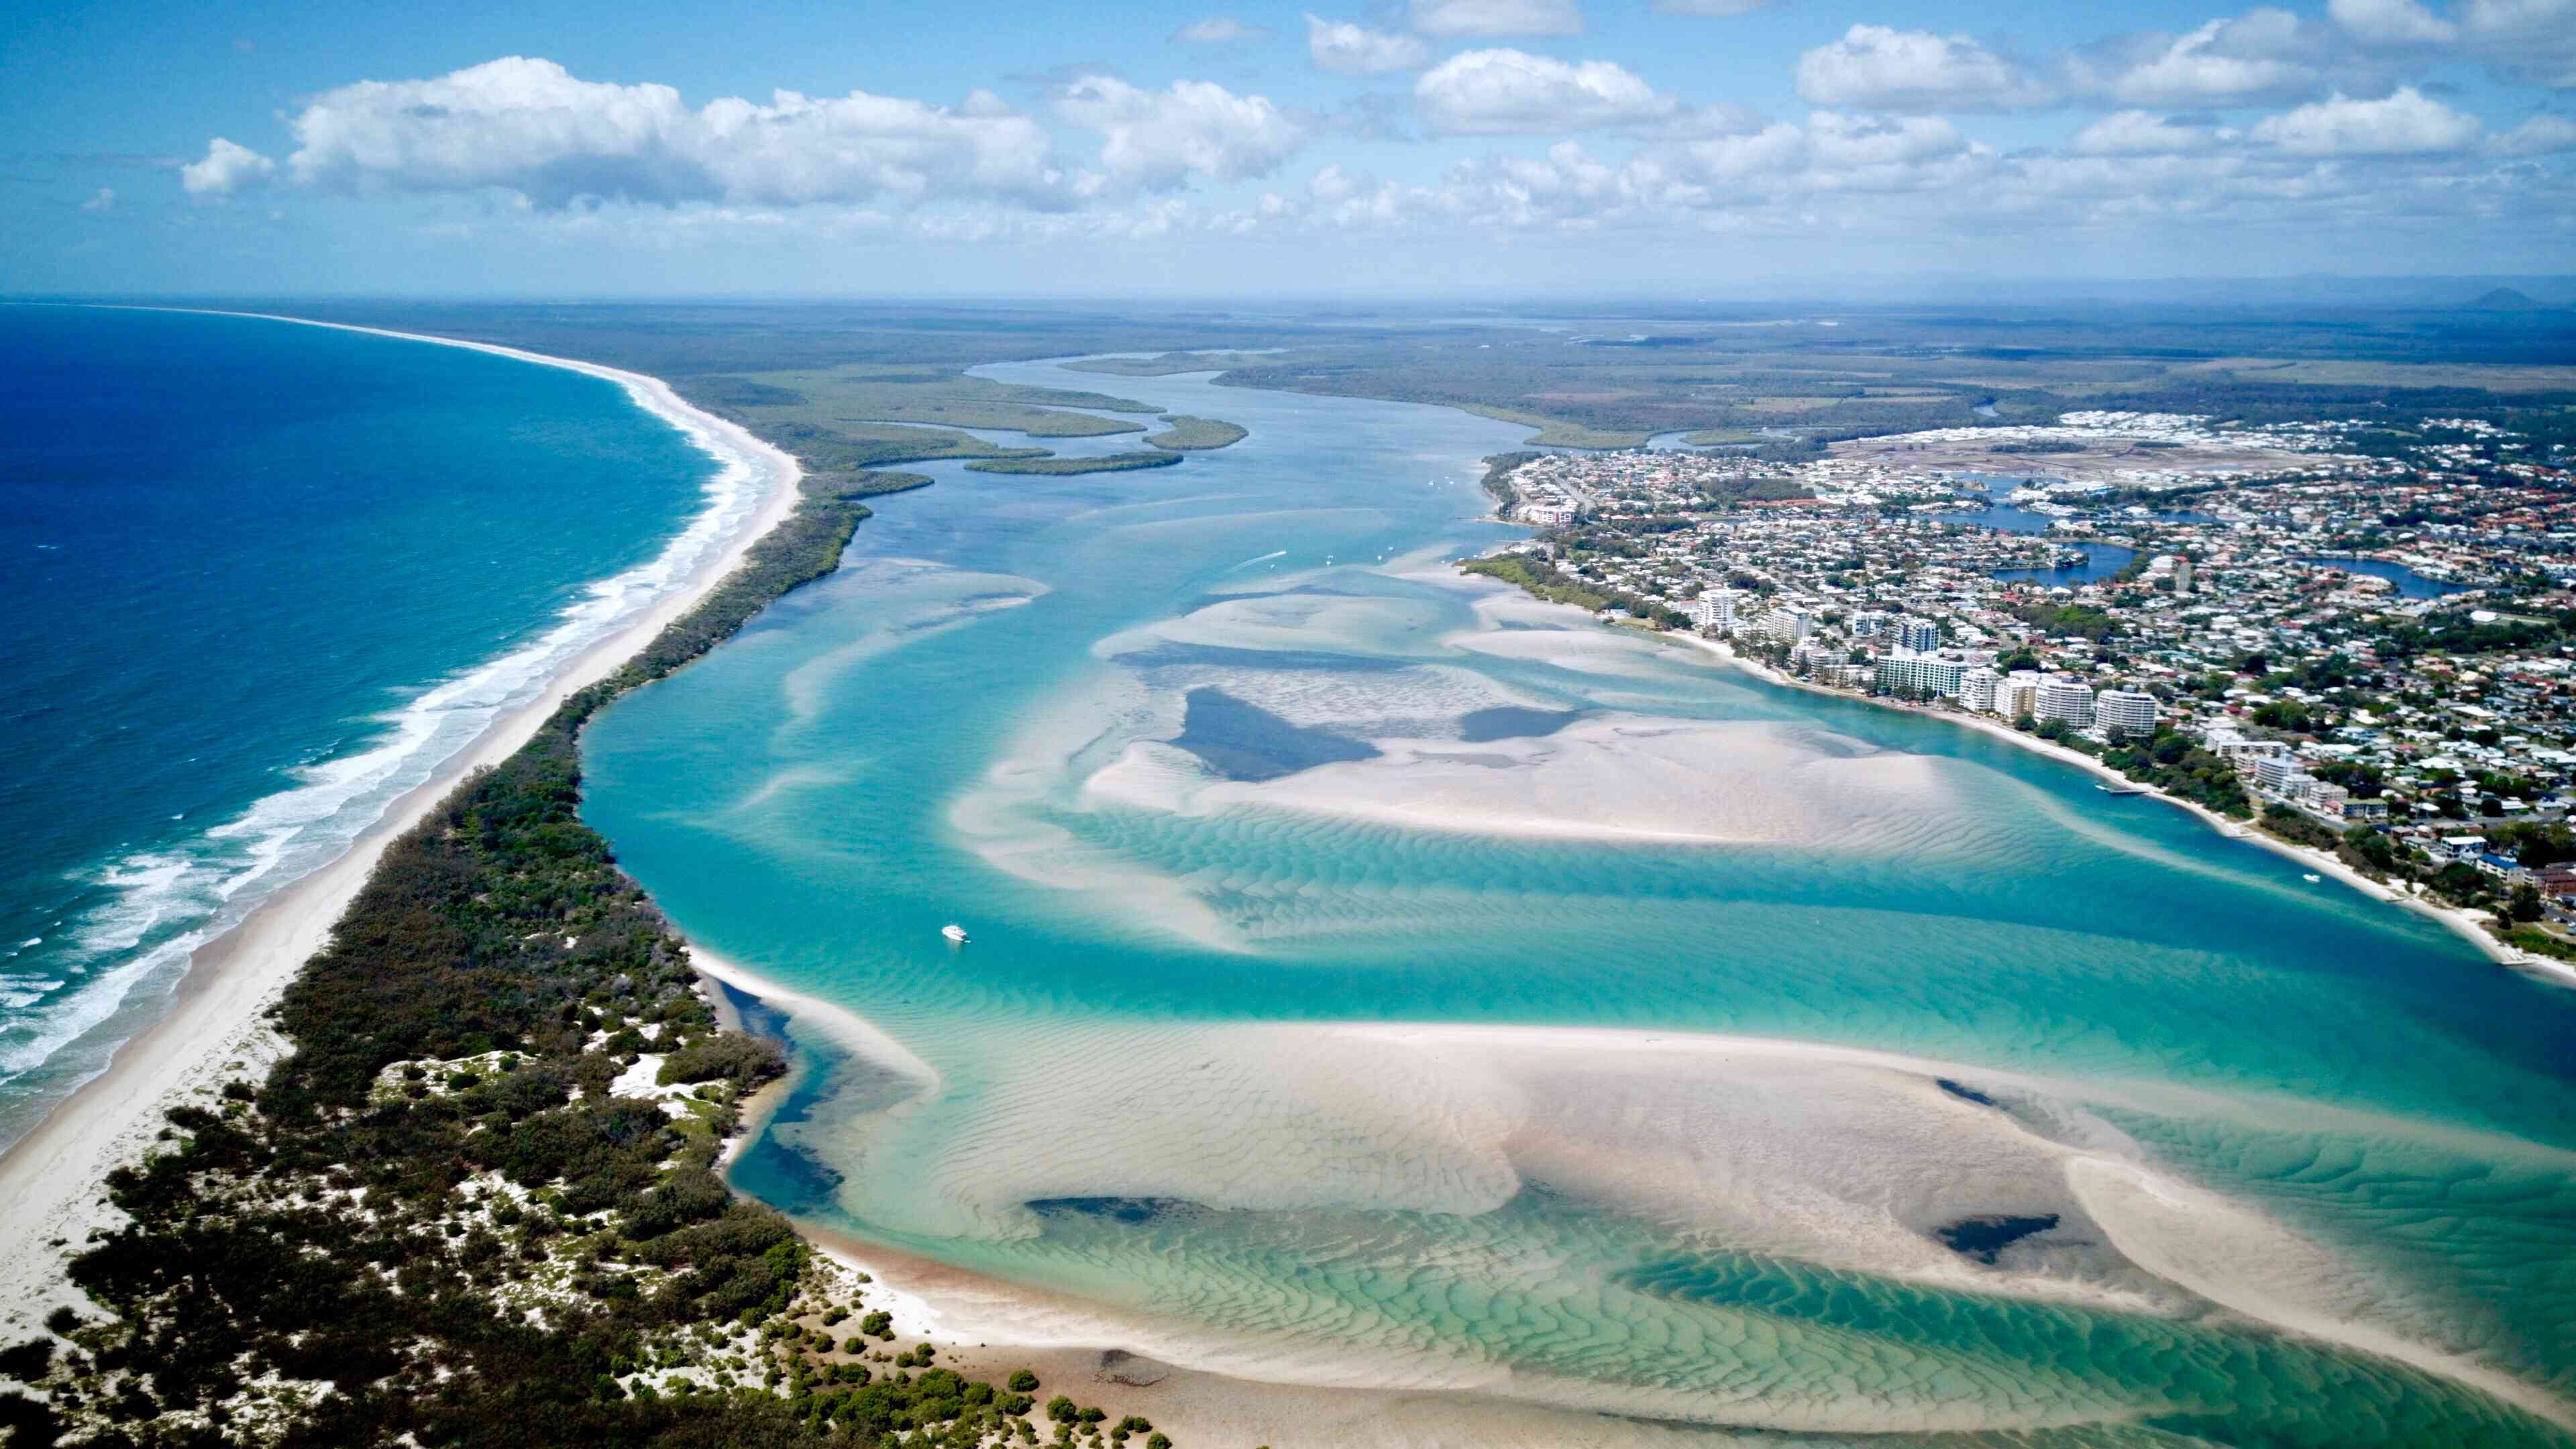 Aerial view of beach and estuary with the city of Caloundra on the right